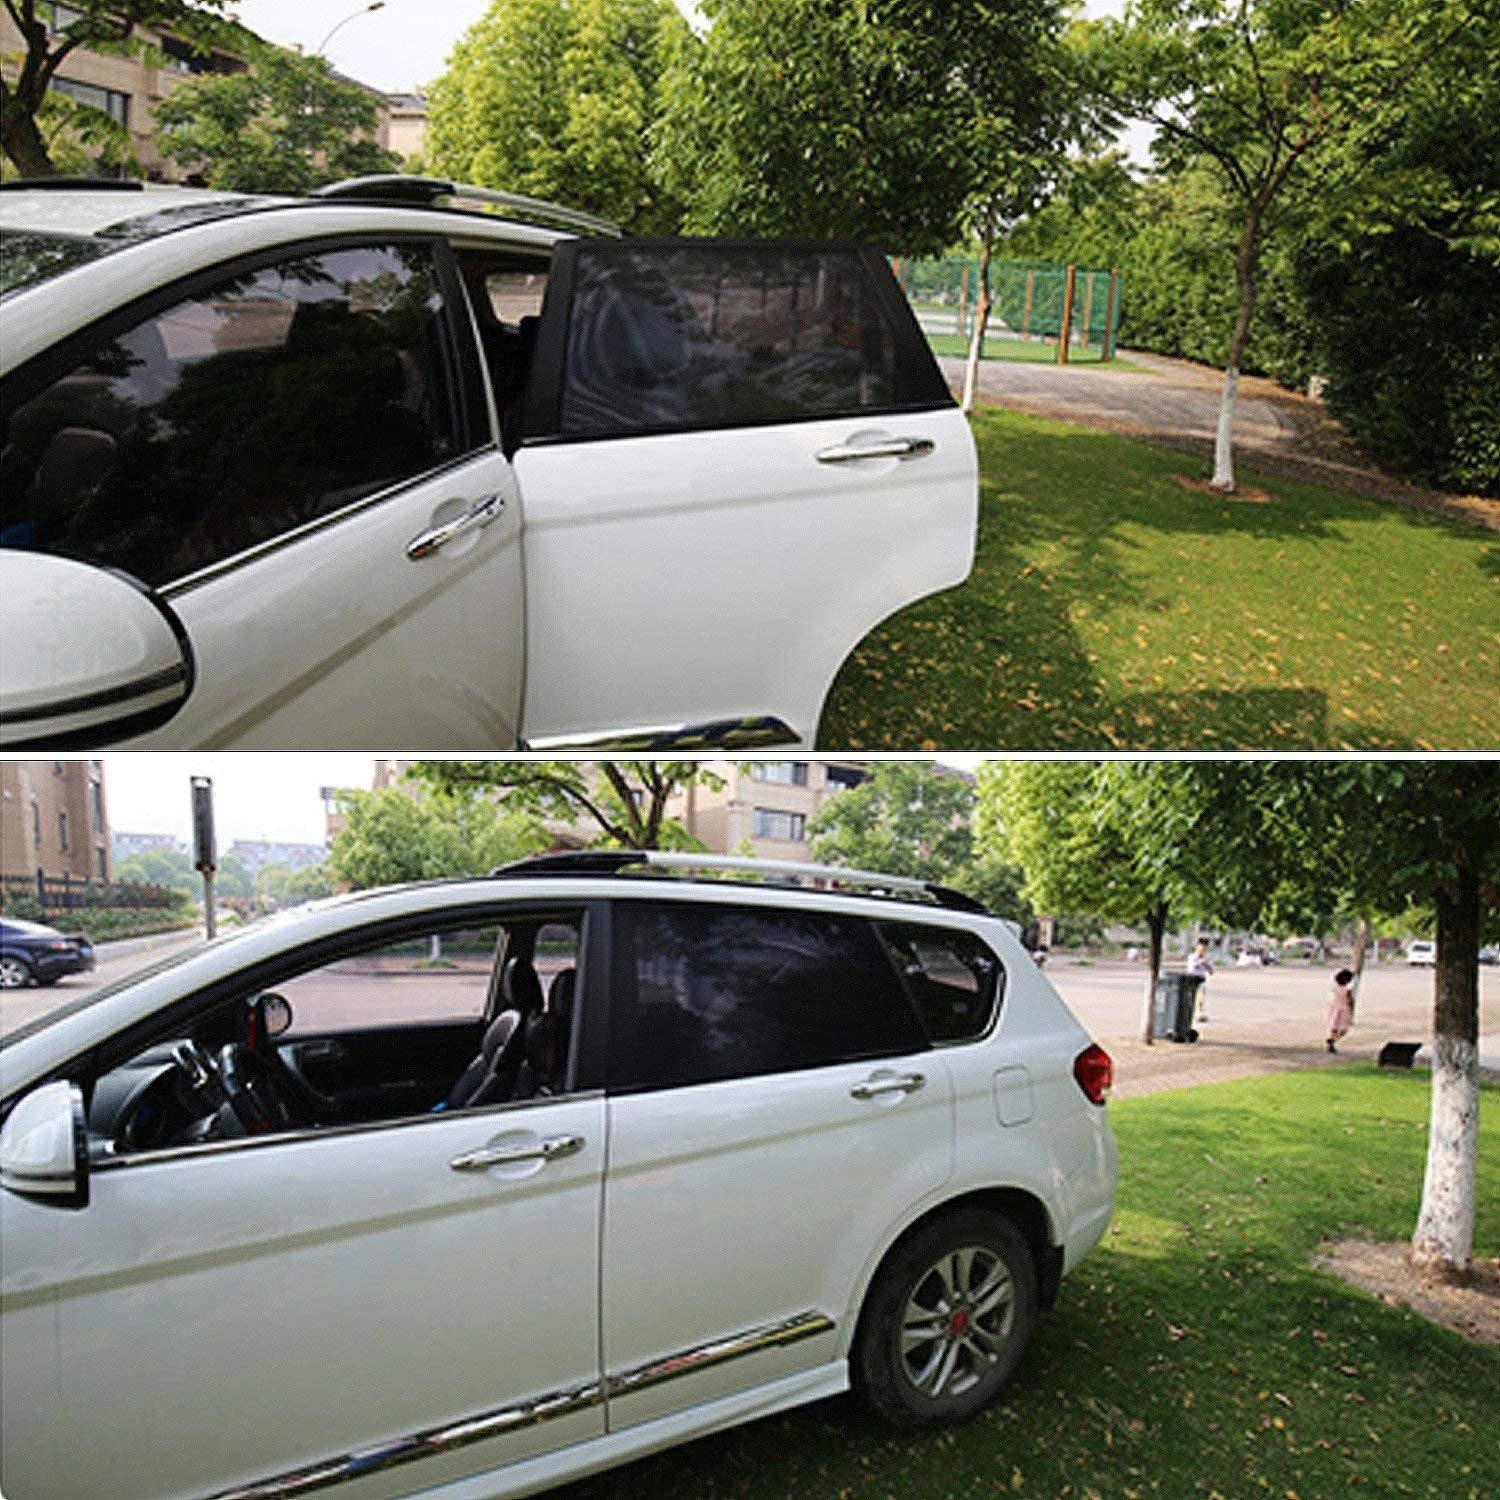 A car with the nylon window cover on one of the back windows